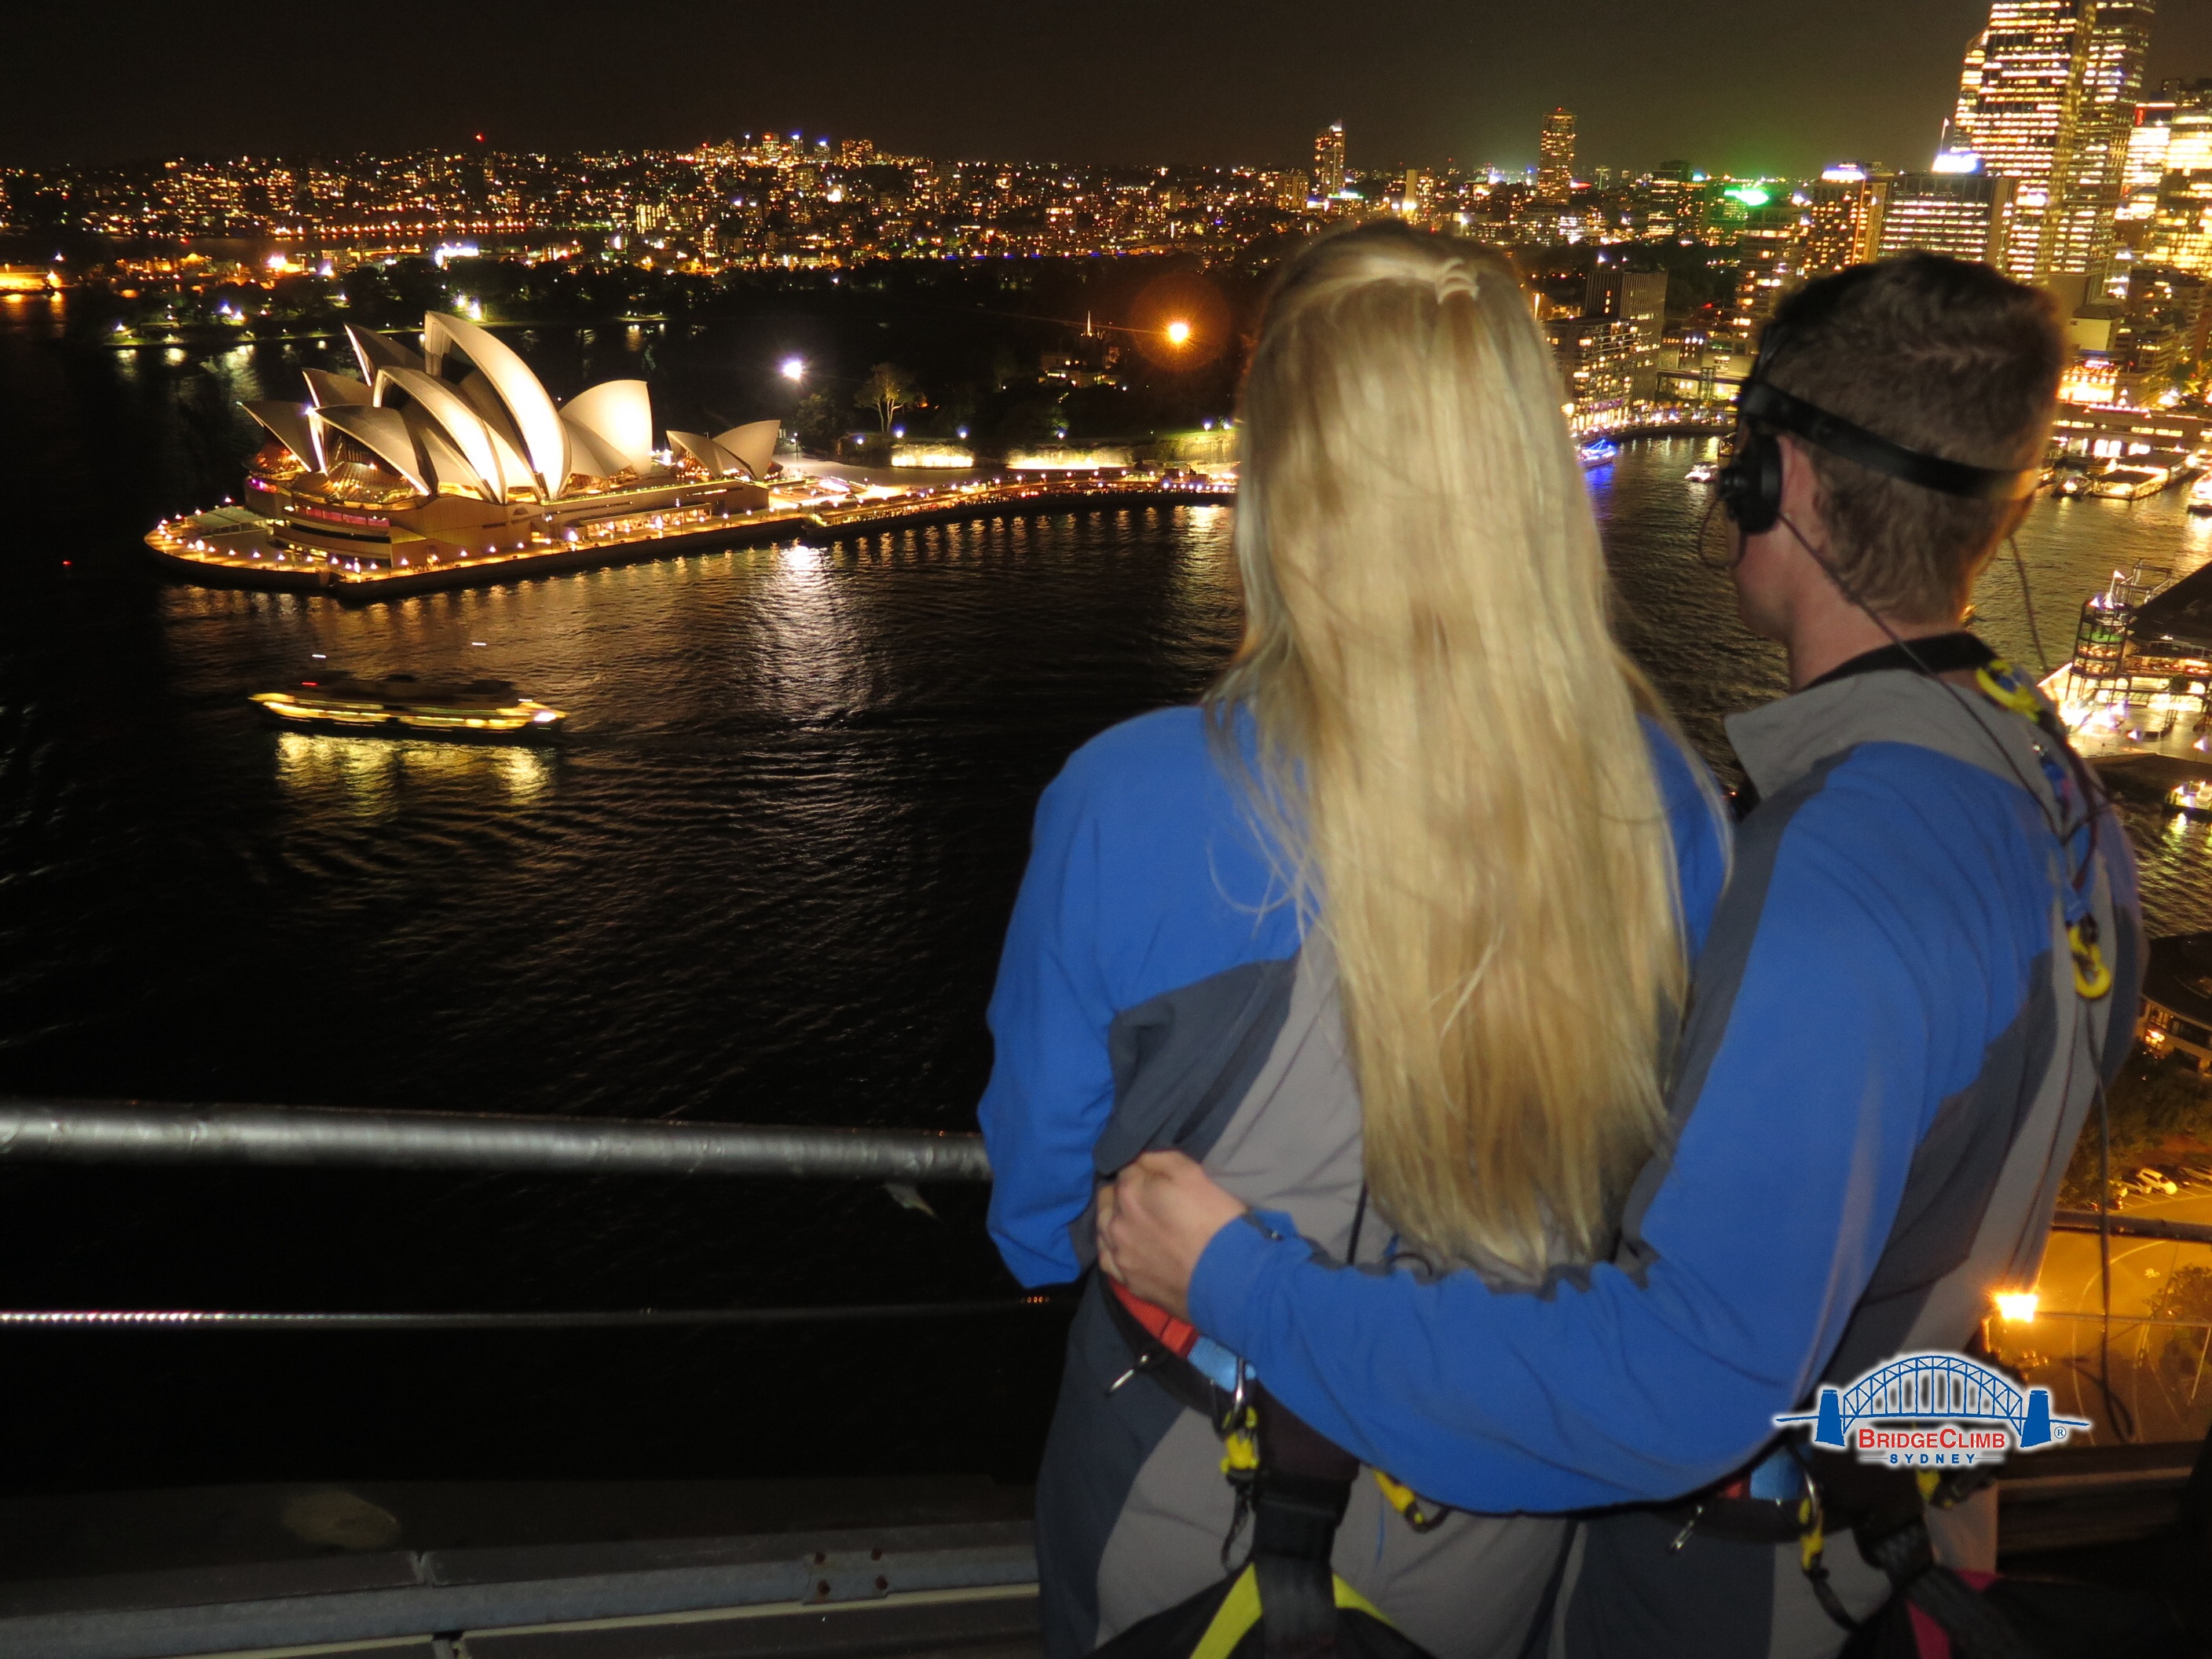 Image 4 of Ellie and Lachlan